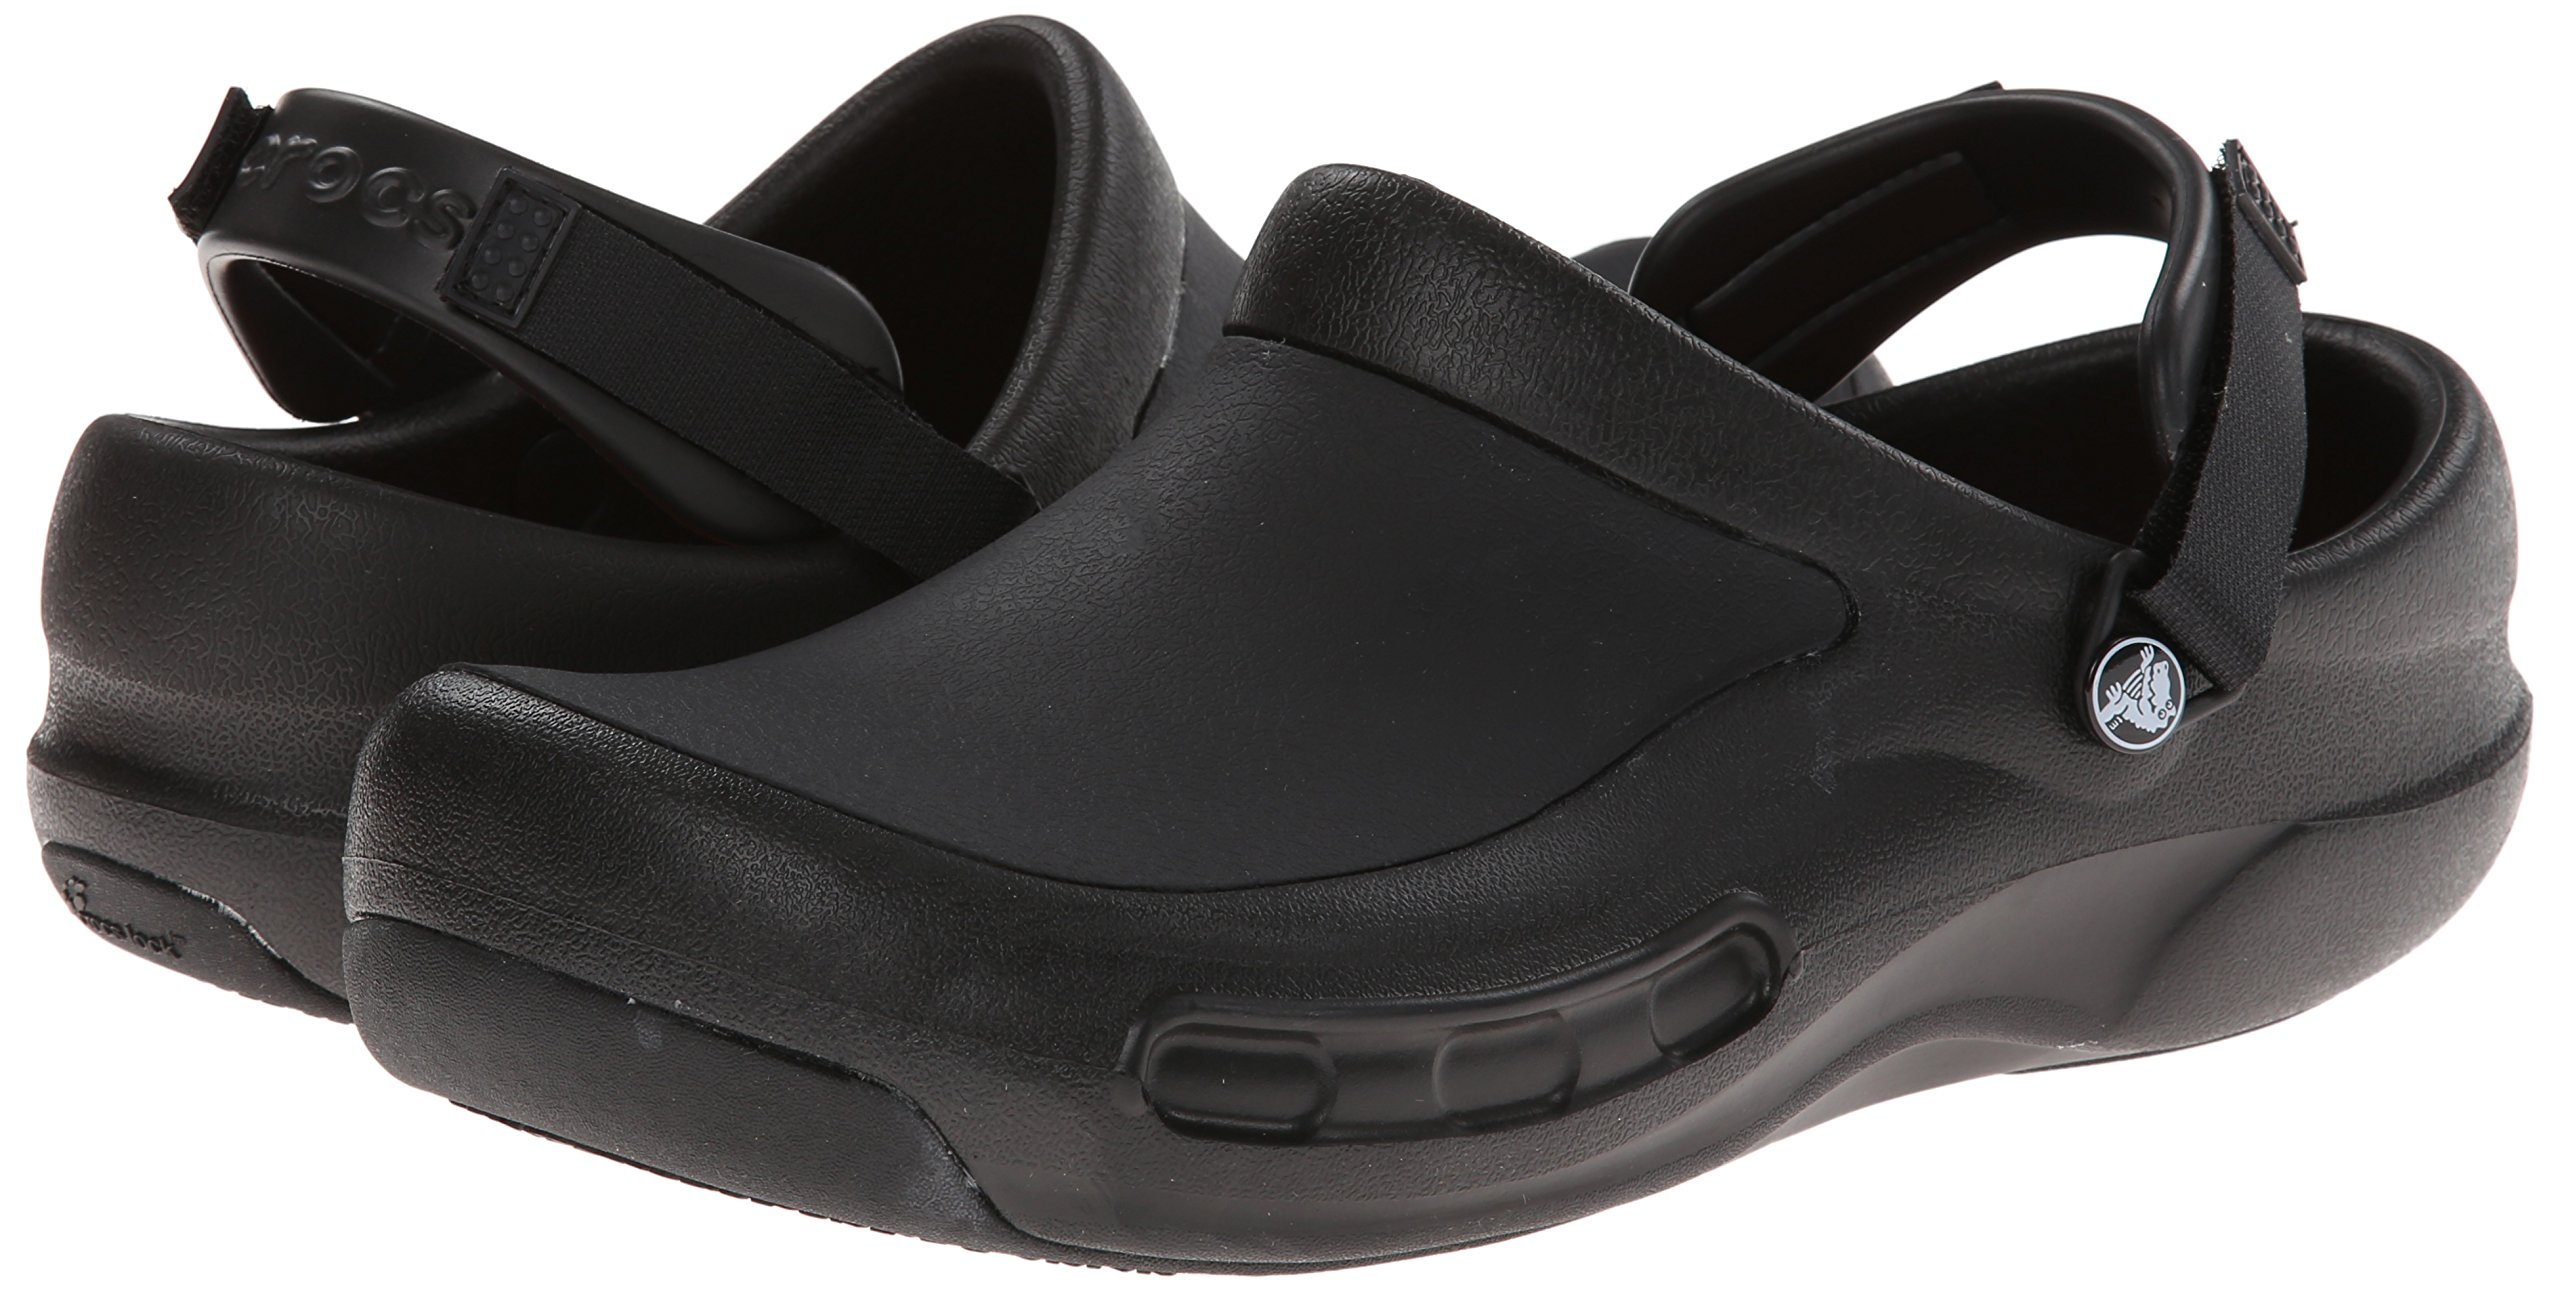 Crocs Men's 15010 Bistro Pro Clog,Black,11 M US by Crocs (Image #6)